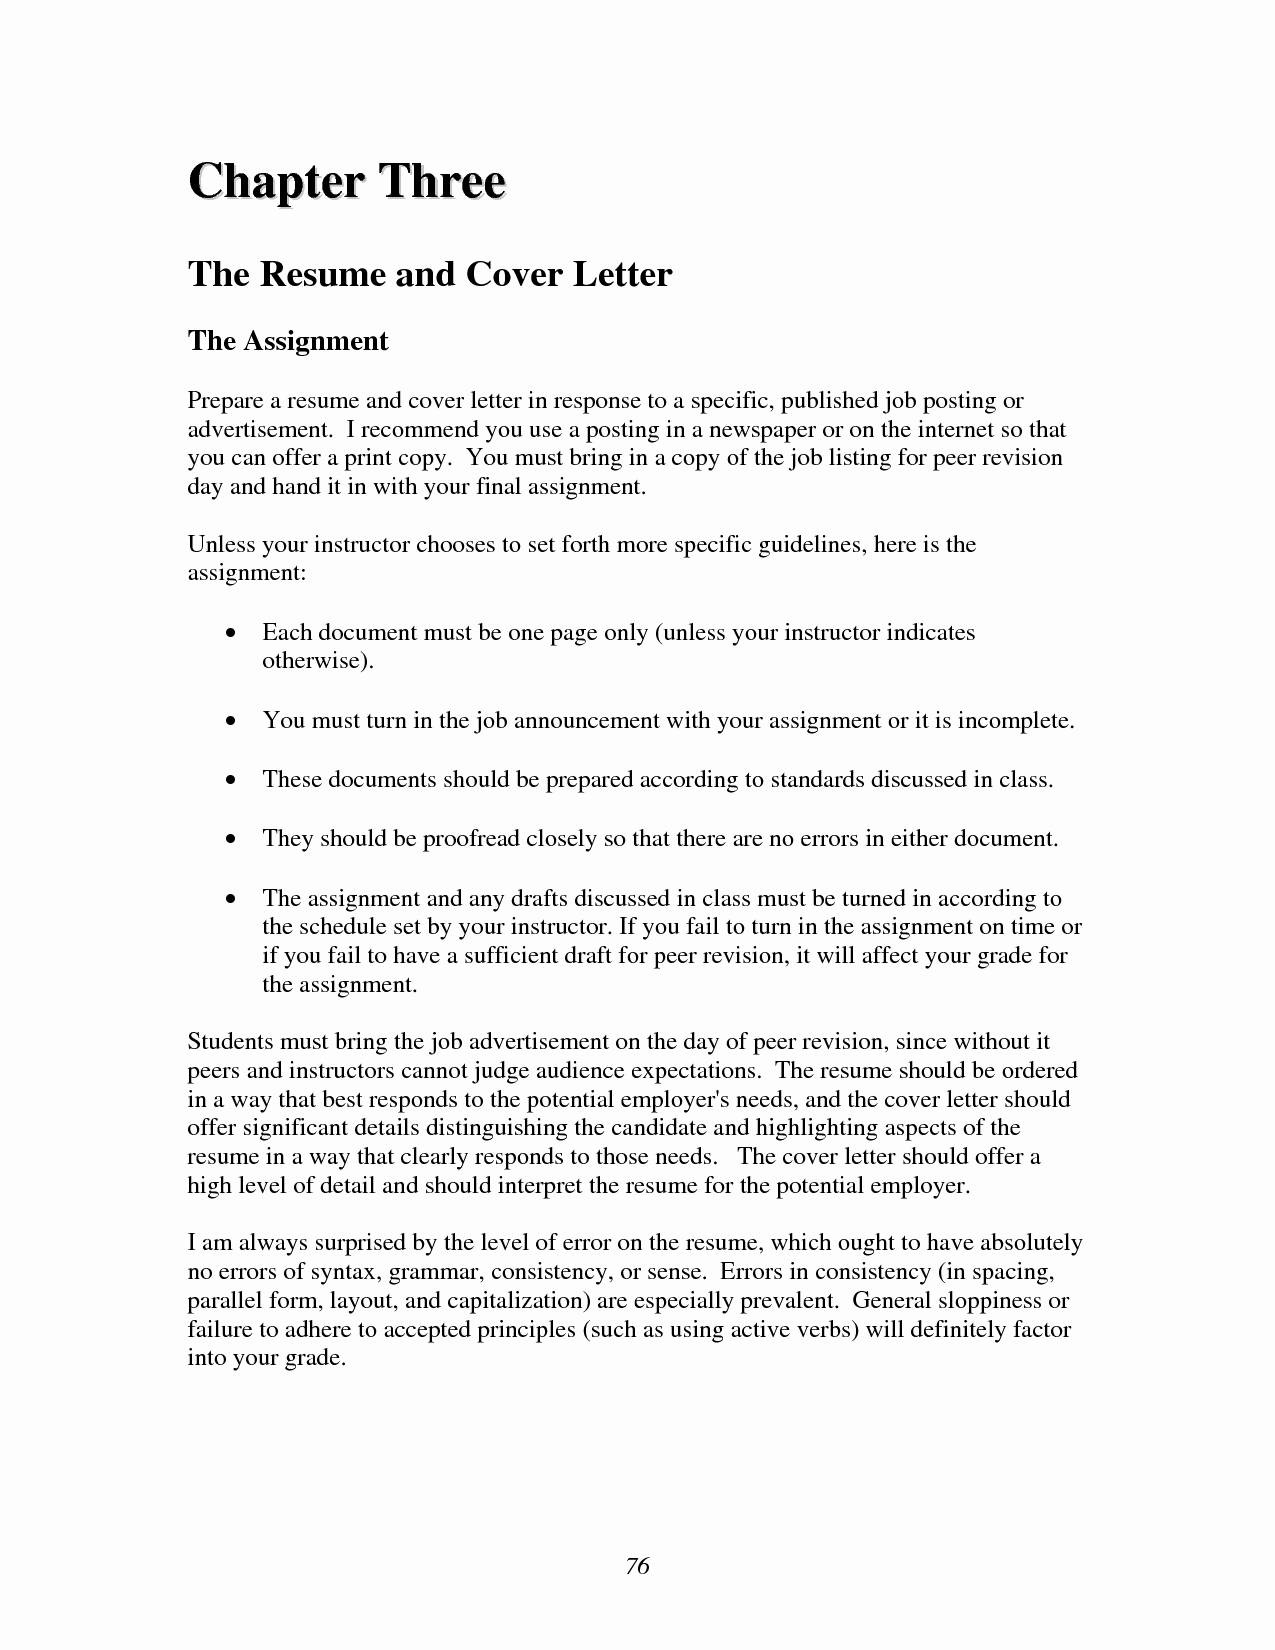 Is Registered Nurse Capitalized In A Resume - Nursing Resume Objective Examples Unique Cover Letter Smaple New